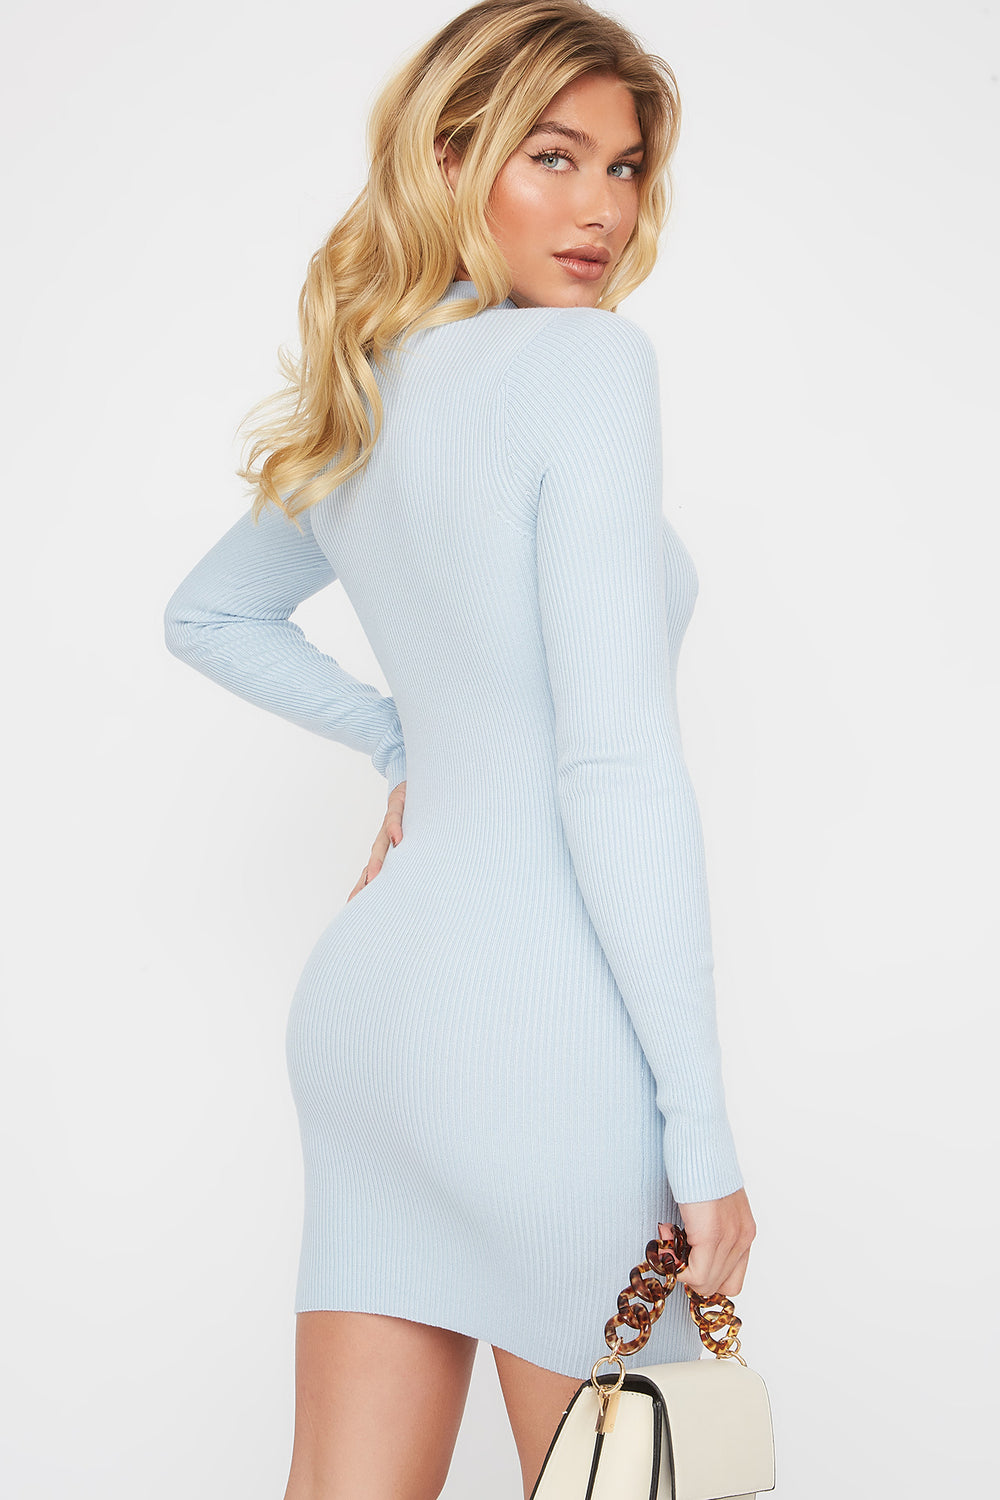 Ribbed Mock Neck Cut Out Sweater Dress Light Blue